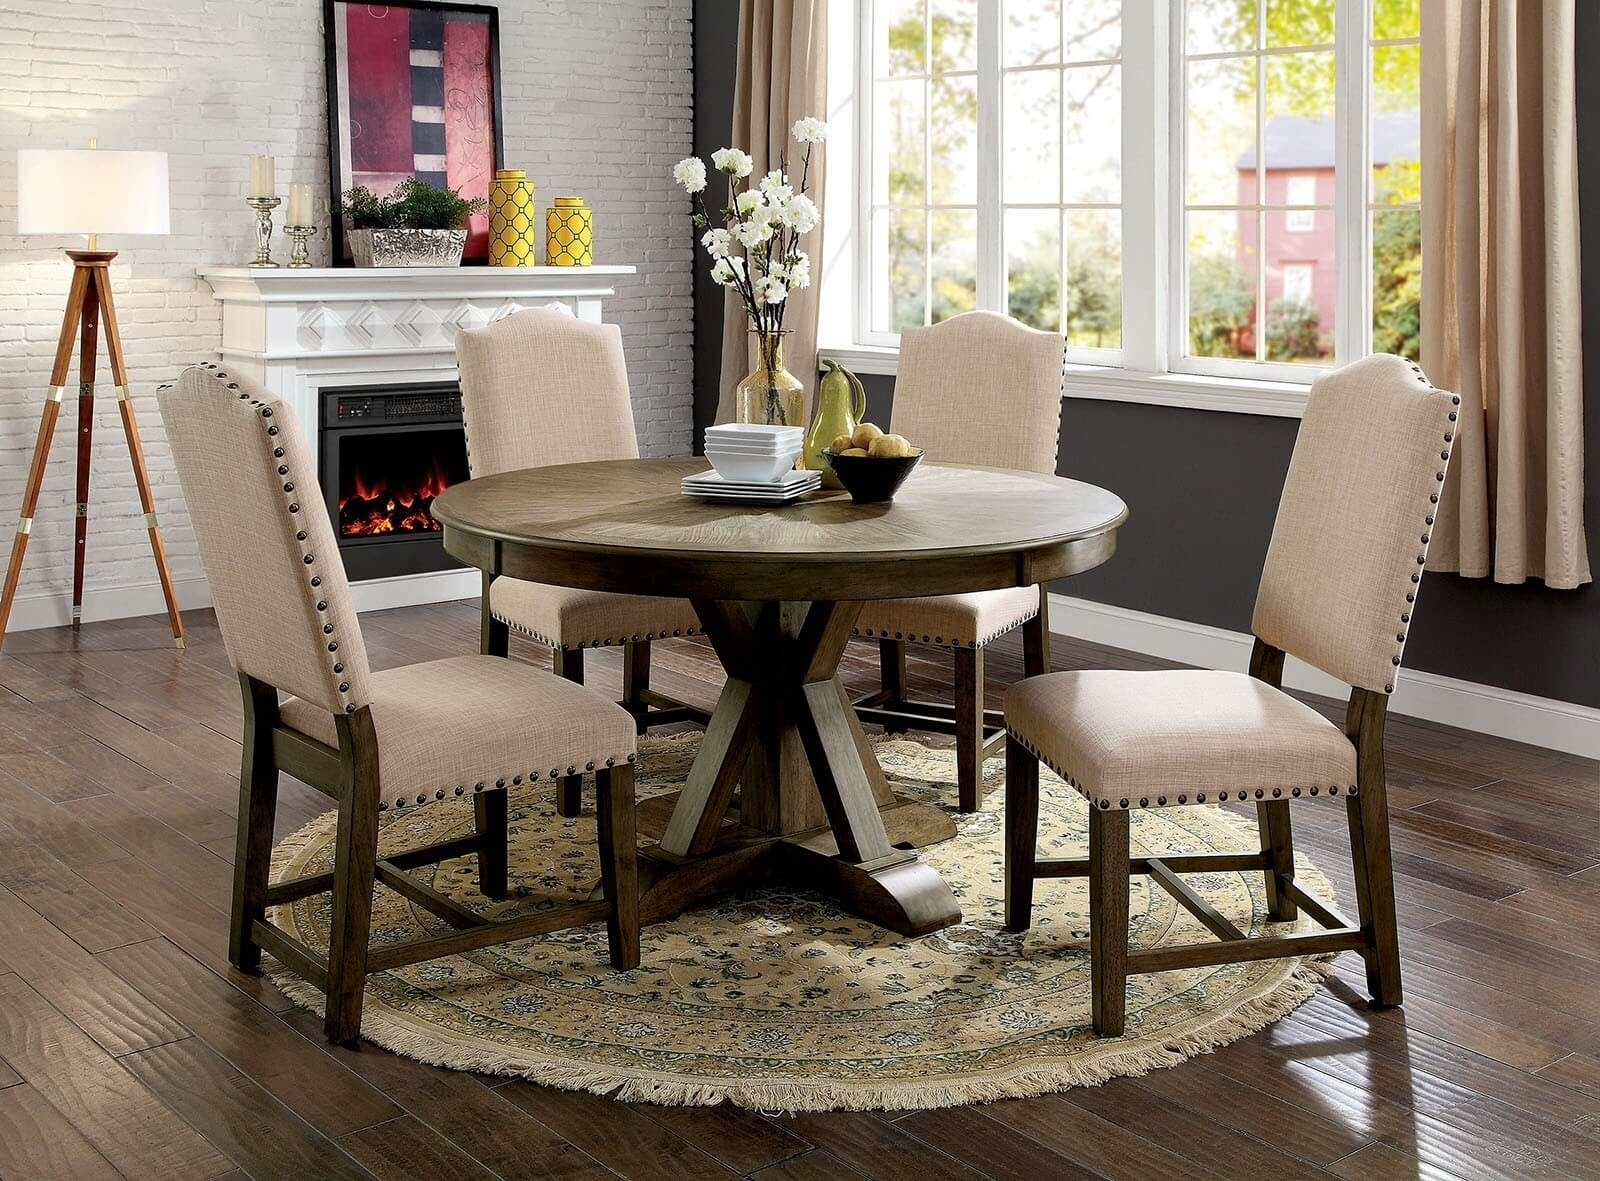 5 Piece Julia Round Dining Set Light Oak Finish – Usa Warehouse In Most Up To Date Valencia 5 Piece Round Dining Sets With Uph Seat Side Chairs (Image 3 of 20)